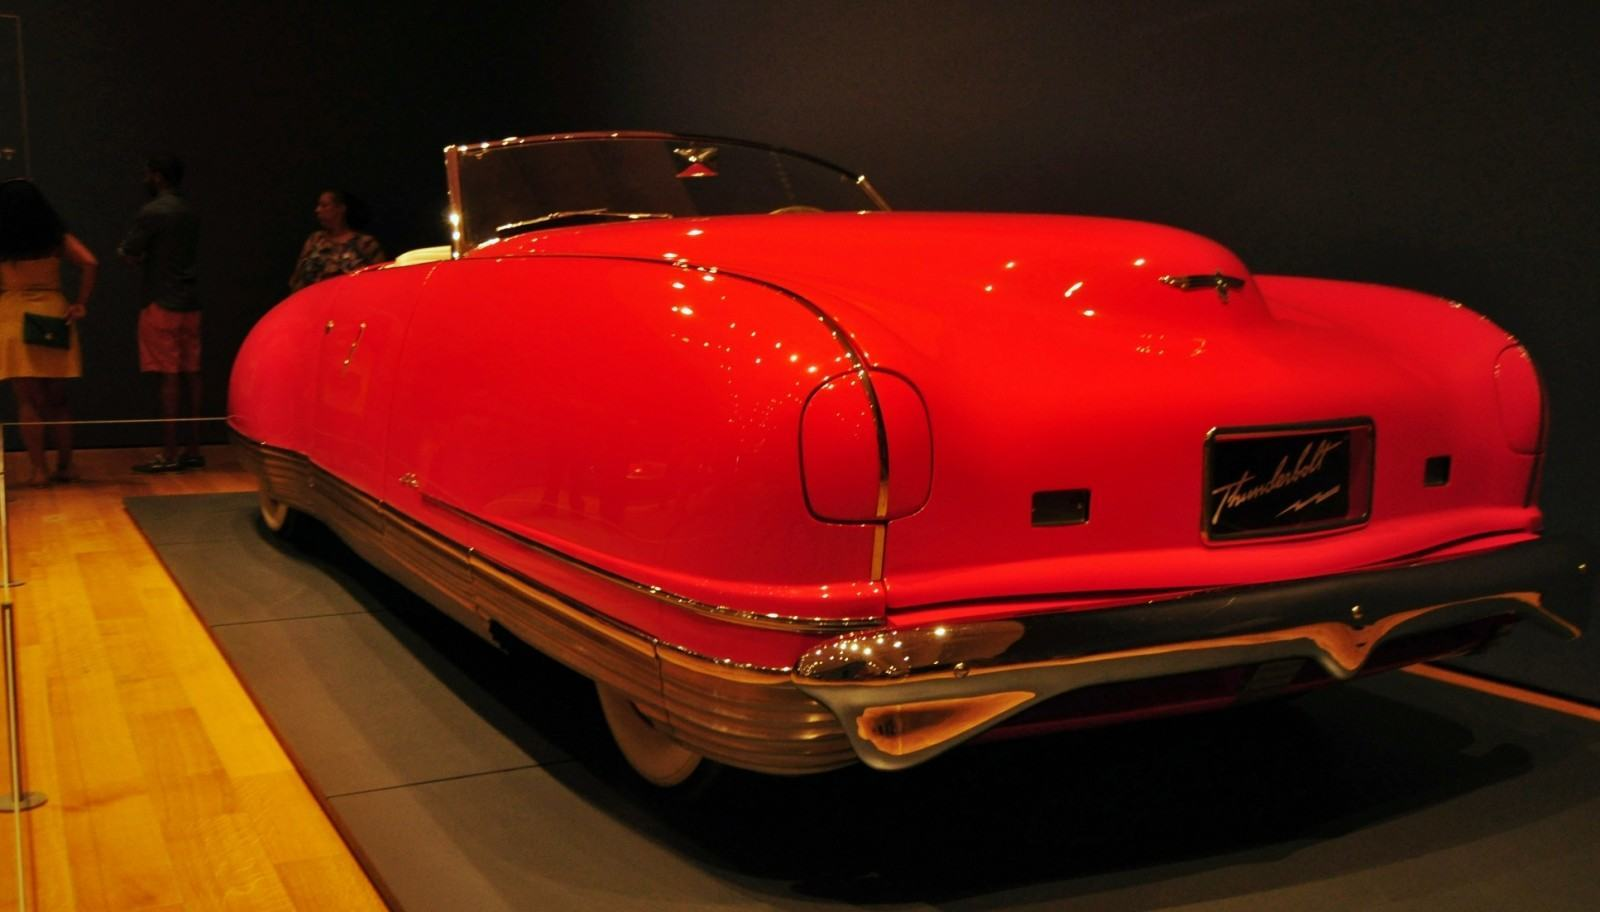 Atlanta Dream Cars Showcase - 1941 Chrysler Thunderbolt Is Aero Convertible Coupe 9